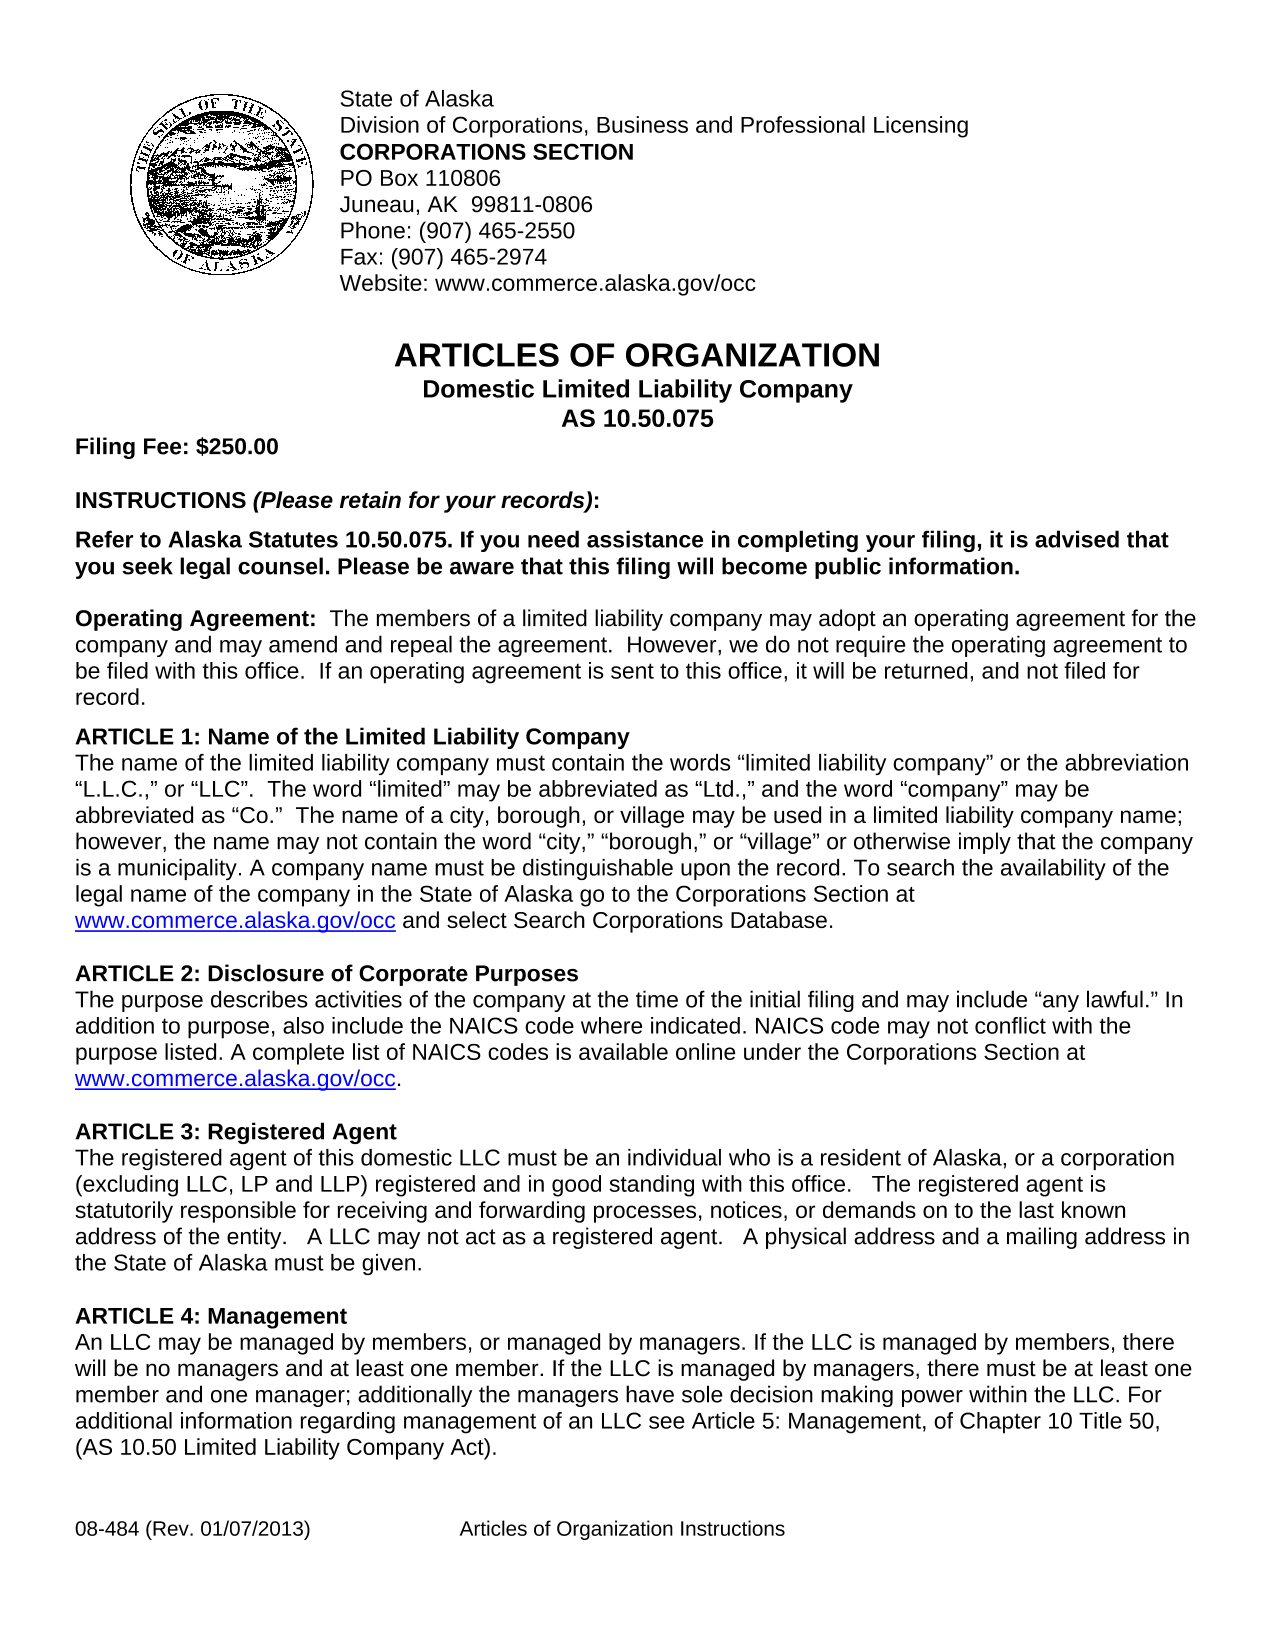 Alaska LLC Articles of Organization